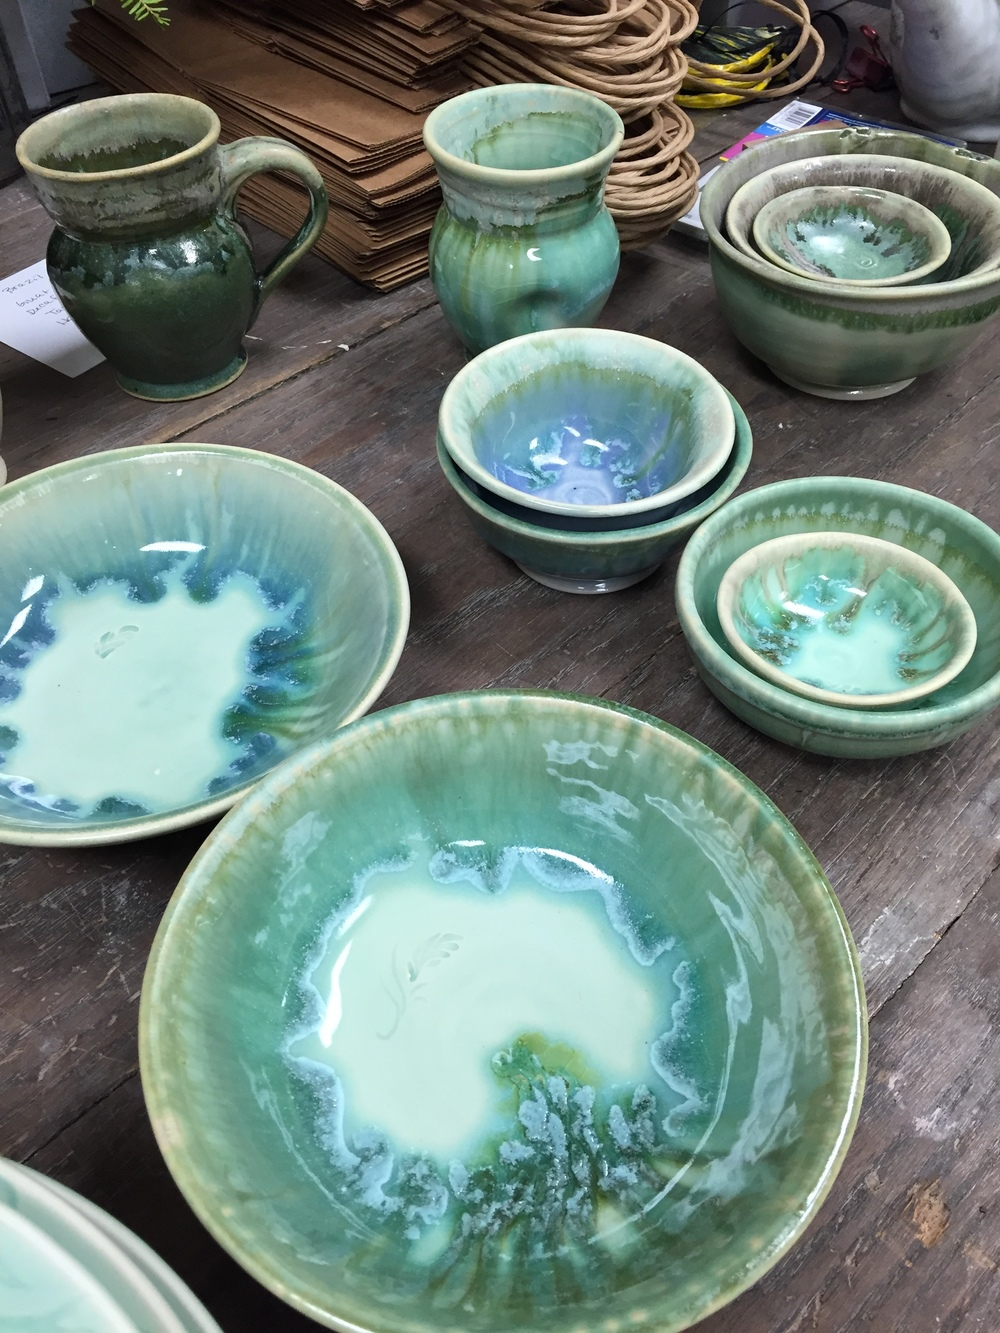 Microwave and dishwasher safe, hand-thrown dinnerware available at Stray Cat Studio.  Affordable, functional works of art.